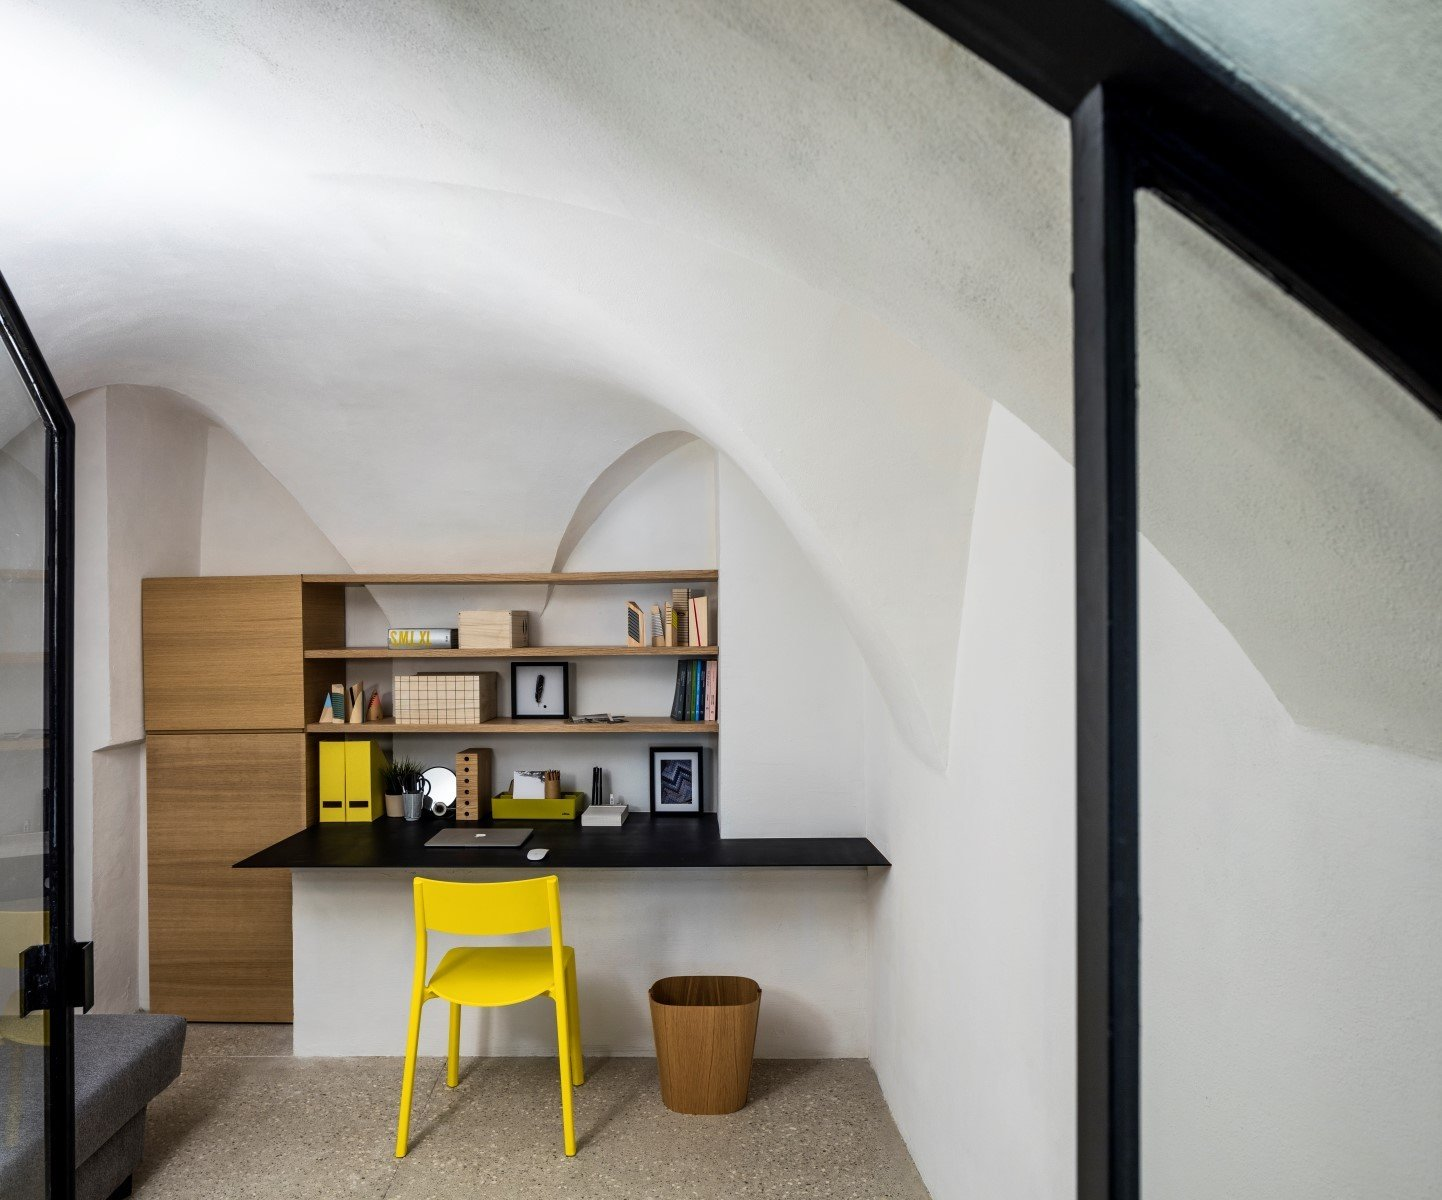 Tagged: Office, Study, Chair, and Terrazzo Floor.  Old Jaffa House by Leibal